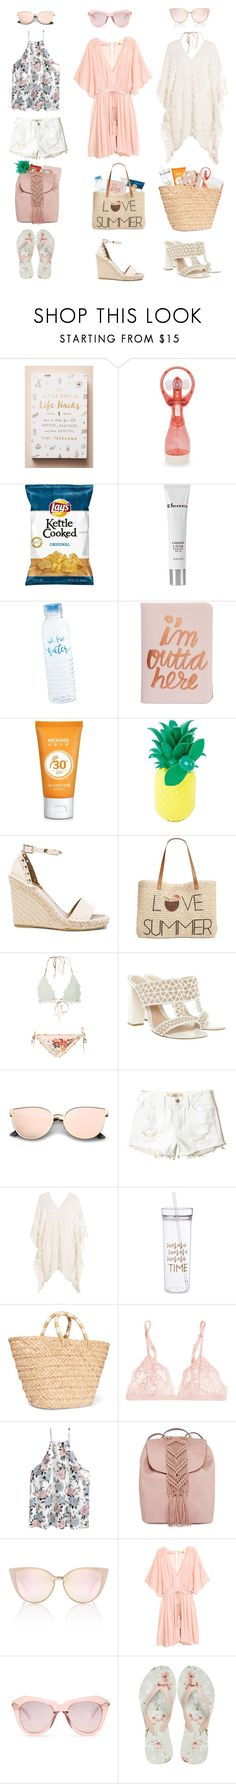 """""""Vacation series: Poolside/Beach Capsule."""" by krys-imvu ❤ liked on Polyvore featuring Anthropologie, Sunnylife, Elemis, ban.do, Valentino, Style & Co., Zimmermann, Alexander McQueen, Hollister Co. and Eberjey"""